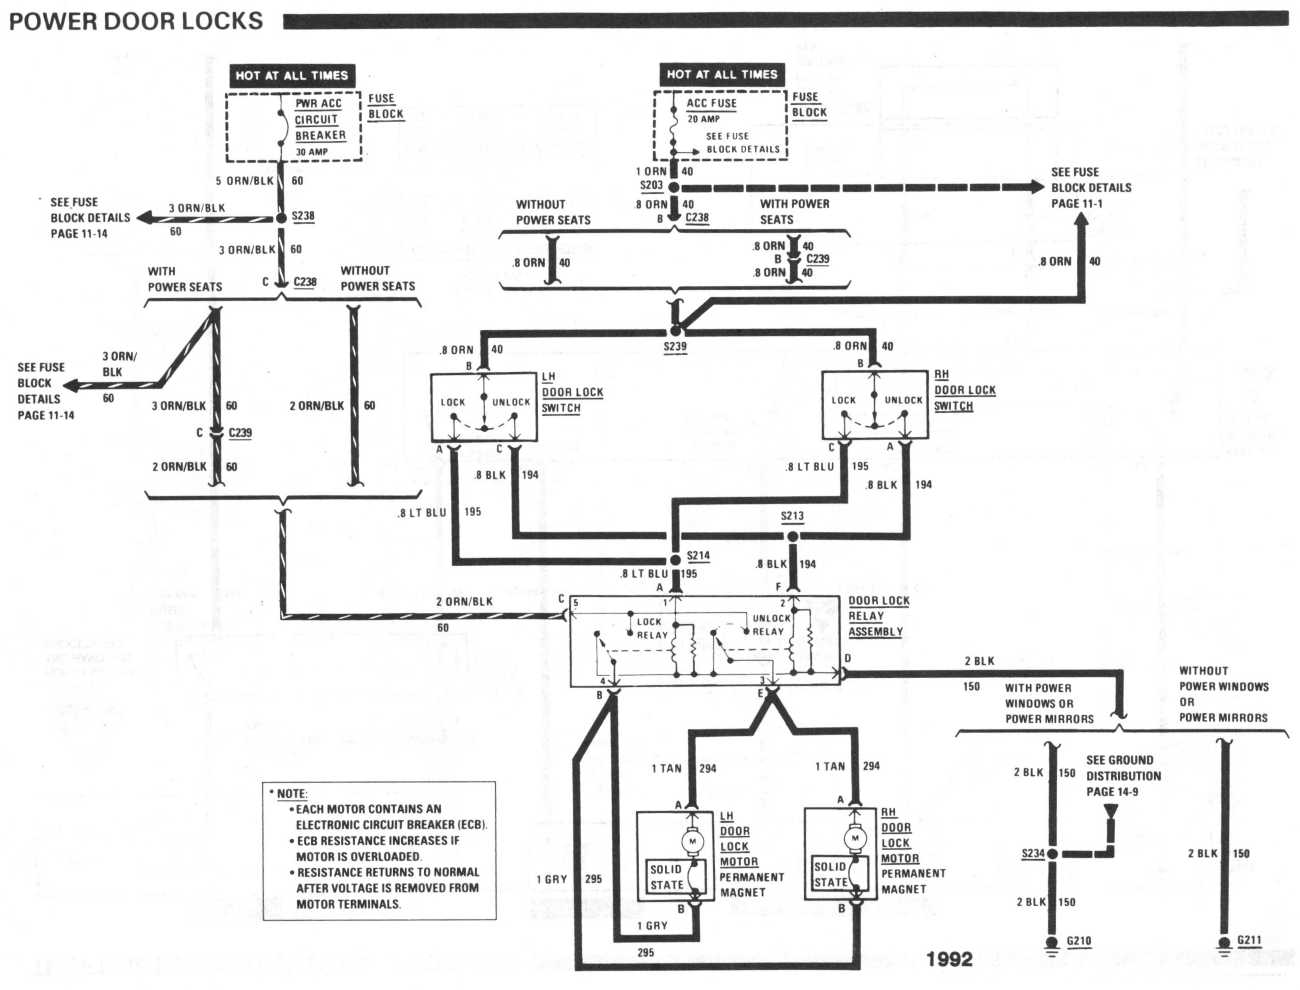 1992 Gmc 1500 Door Wiring | Wiring Liry  Gmc Truck Electrical Wiring Diagrams on 1999 gmc c8500 wiring diagrams, gmc truck fuse diagrams, international heavy truck wiring diagrams, gmc radio wiring diagram, gmc truck cruise control, gmc wiper motor wiring diagram, dodge truck electrical diagrams, 1996 gmc wiring diagrams, gmc wiring schematics, gmc brake light wiring diagram, 1997 gmc truck wiring diagrams, gmc truck cooling system, 2005 volvo truck wiring diagrams, gmc van wiring diagram, gmc sierra wiring diagram, case 222 tractor wiring diagrams, gmc truck ignition wiring diagrams, chevy wiring diagrams, gmc truck brake, gmc truck trailer wiring,